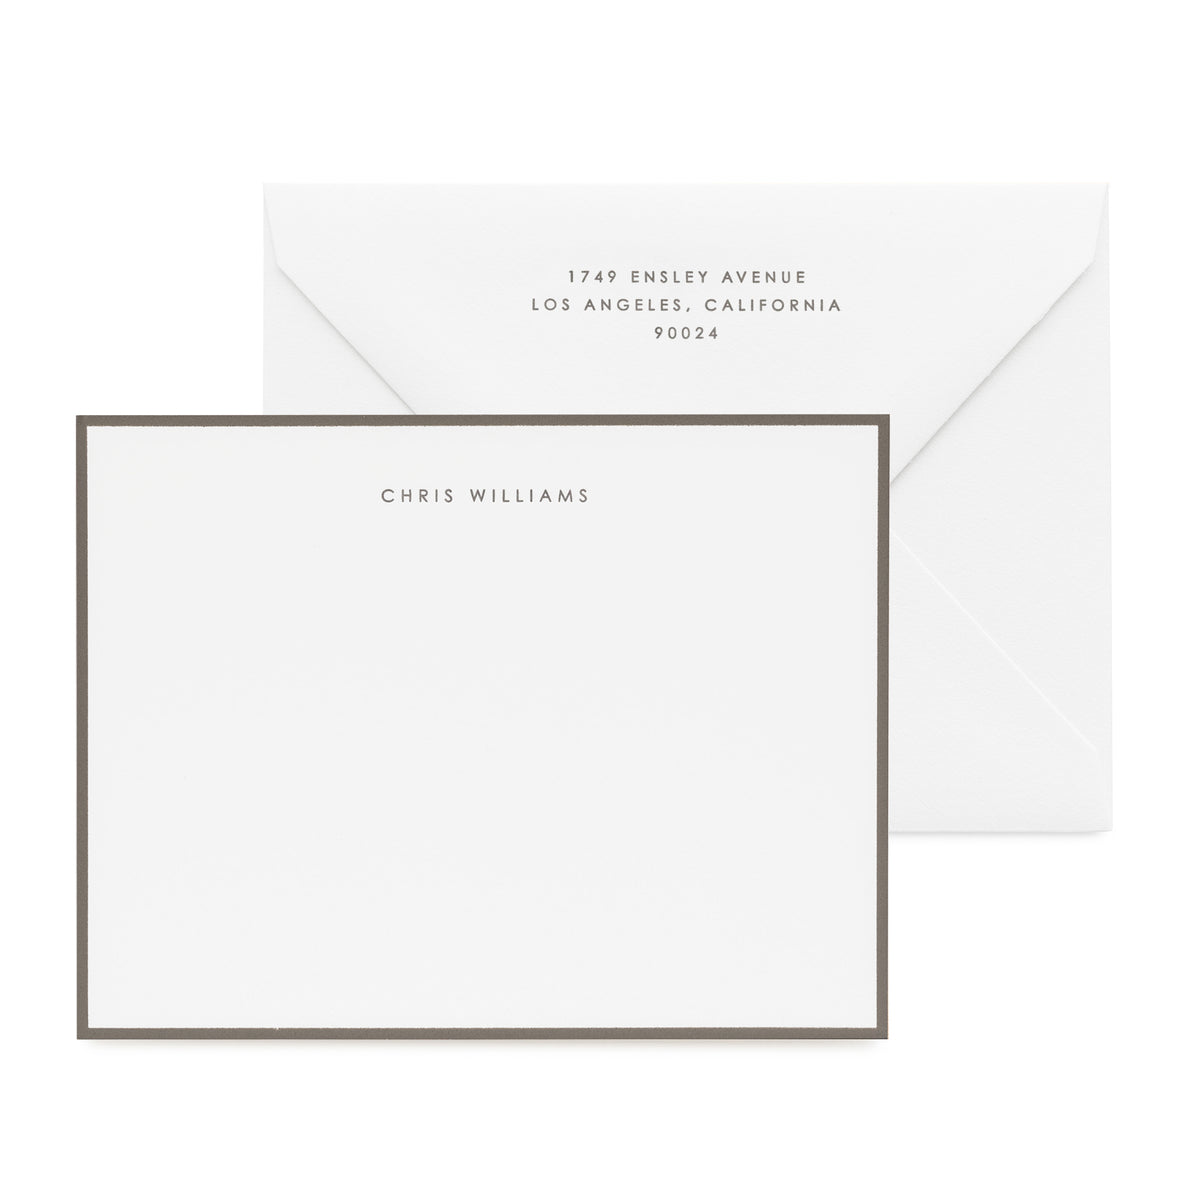 Classic men's stationery set printed in dark grey letterpress with a dark grey painted border